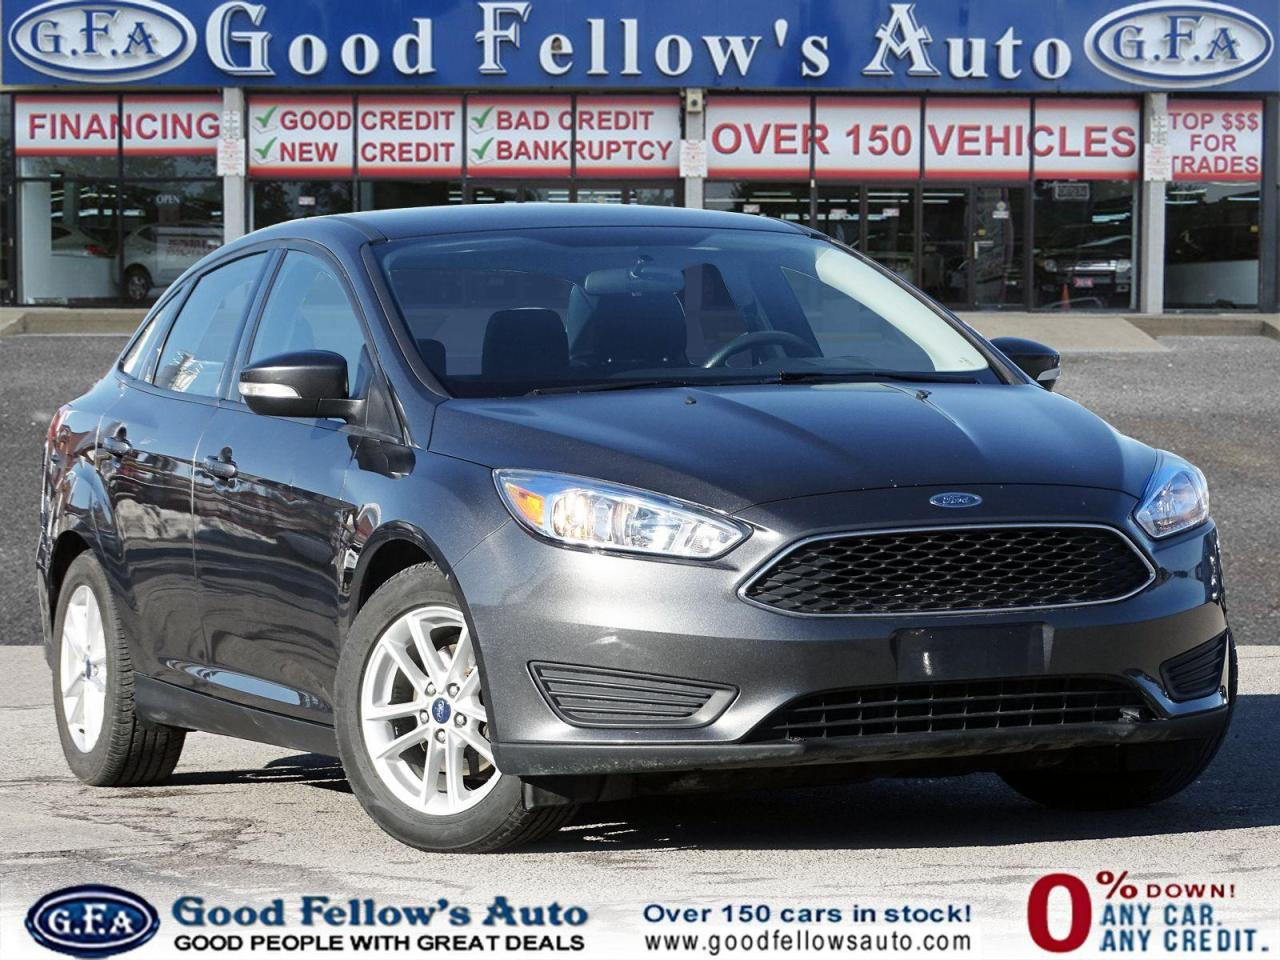 used 2016 Ford Focus car, priced at $10,400